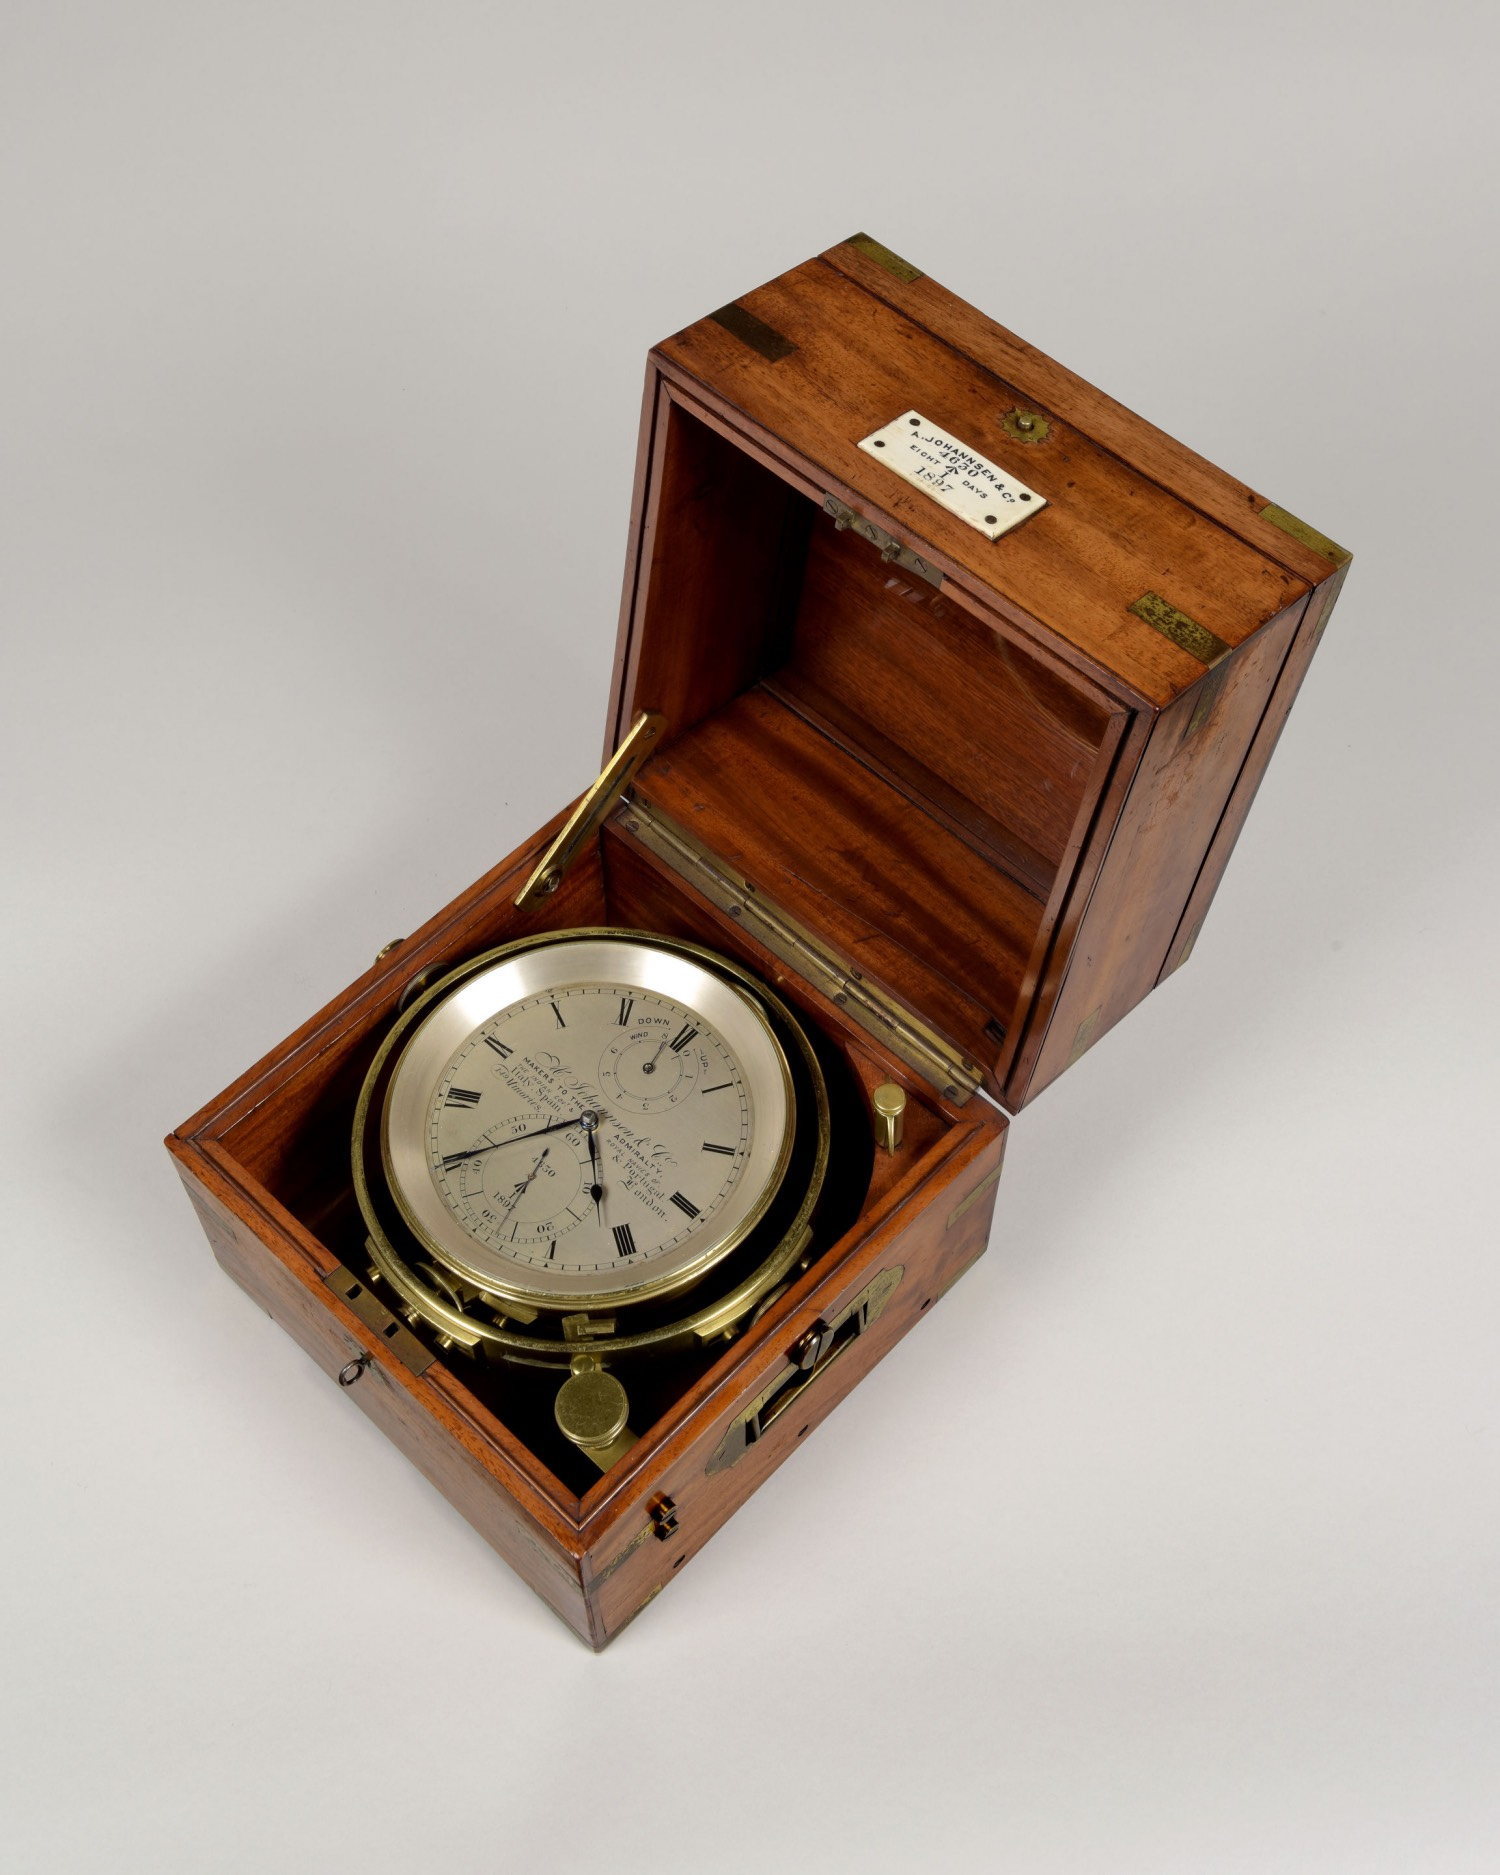 A. JOHANNSEN AND CO., NUMBER 4630 DATED 1897. A FINE 8-DAY MARINE CHRONOMETER.